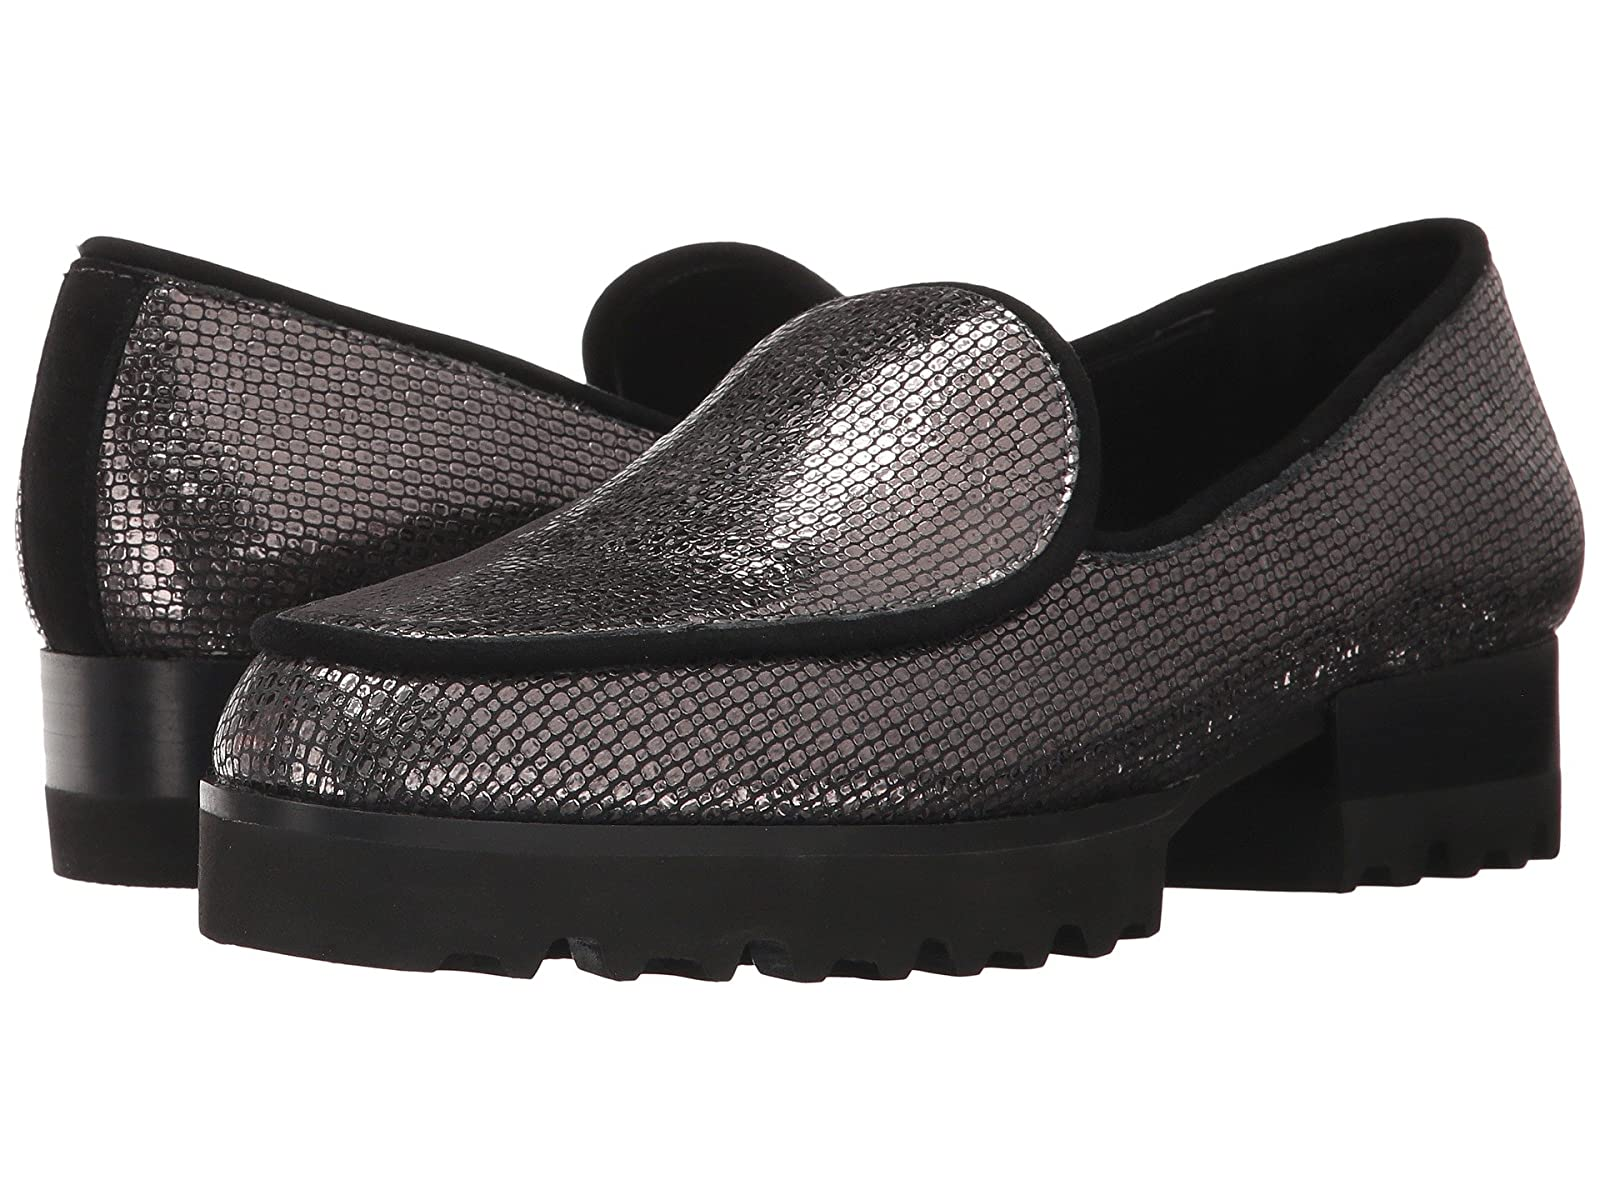 Donald J Pliner ElenCheap and distinctive eye-catching shoes